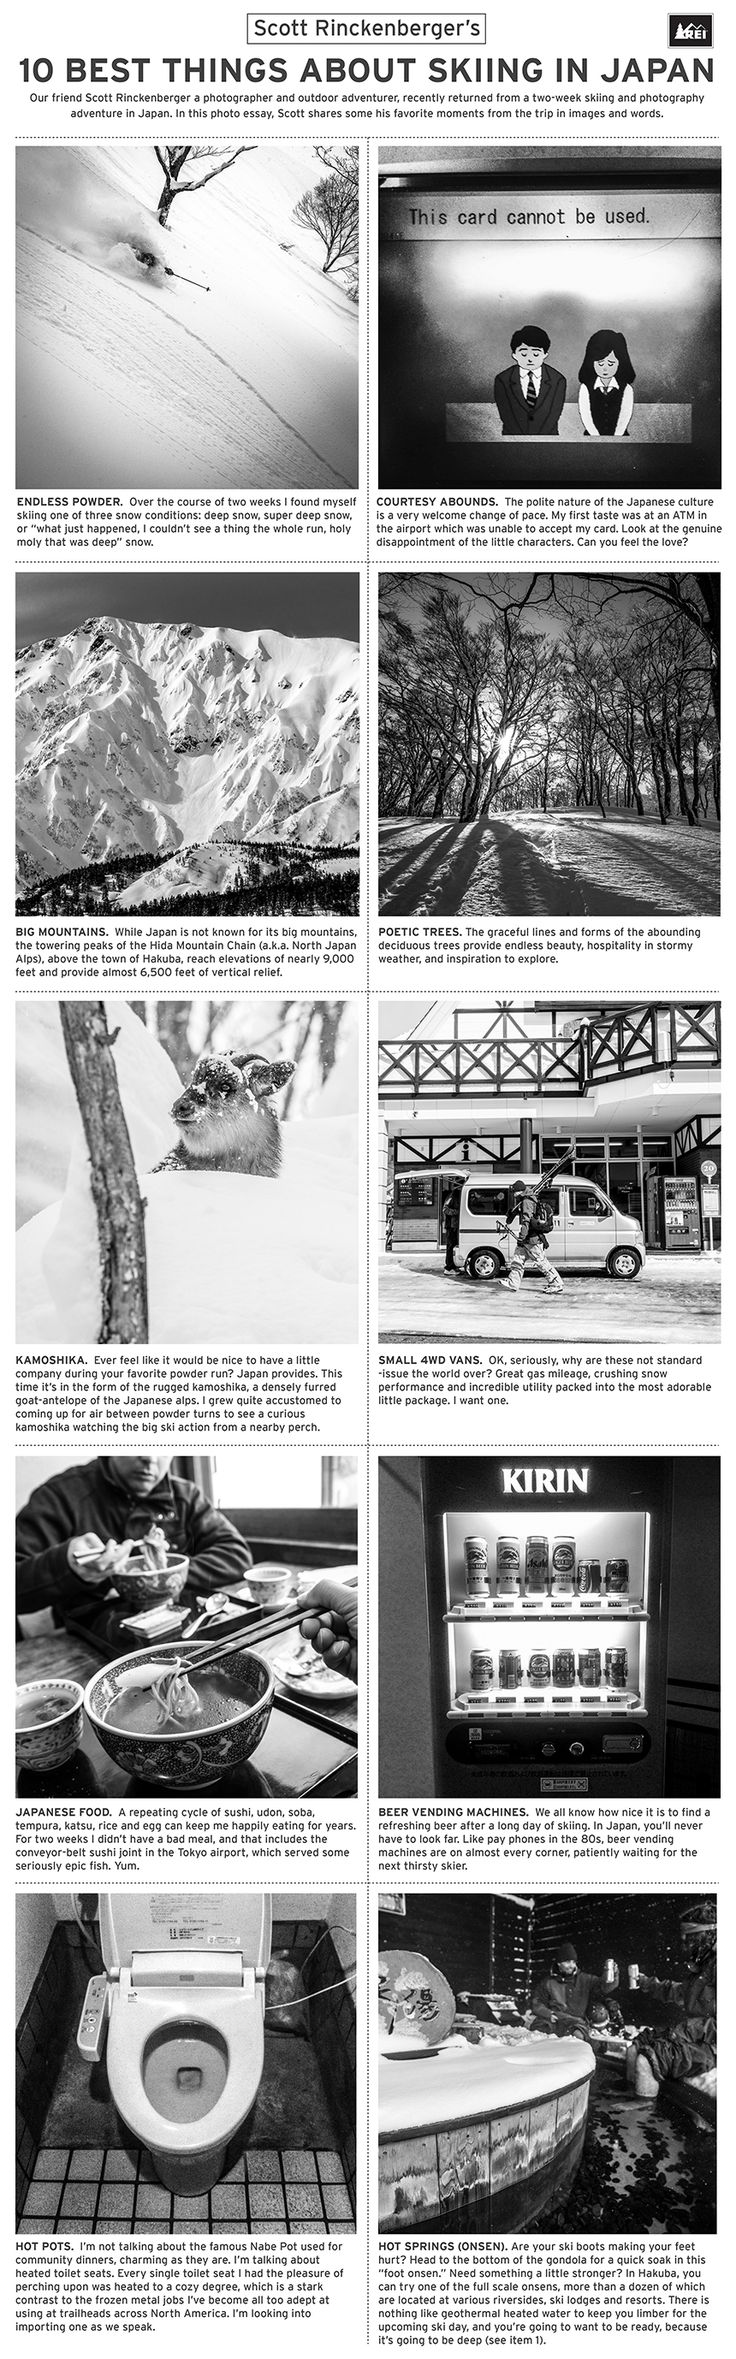 best ideas about photo essay documentary scott of scott rinckenberger photographyiuml iquest is back home after 2 weeks of skiing in